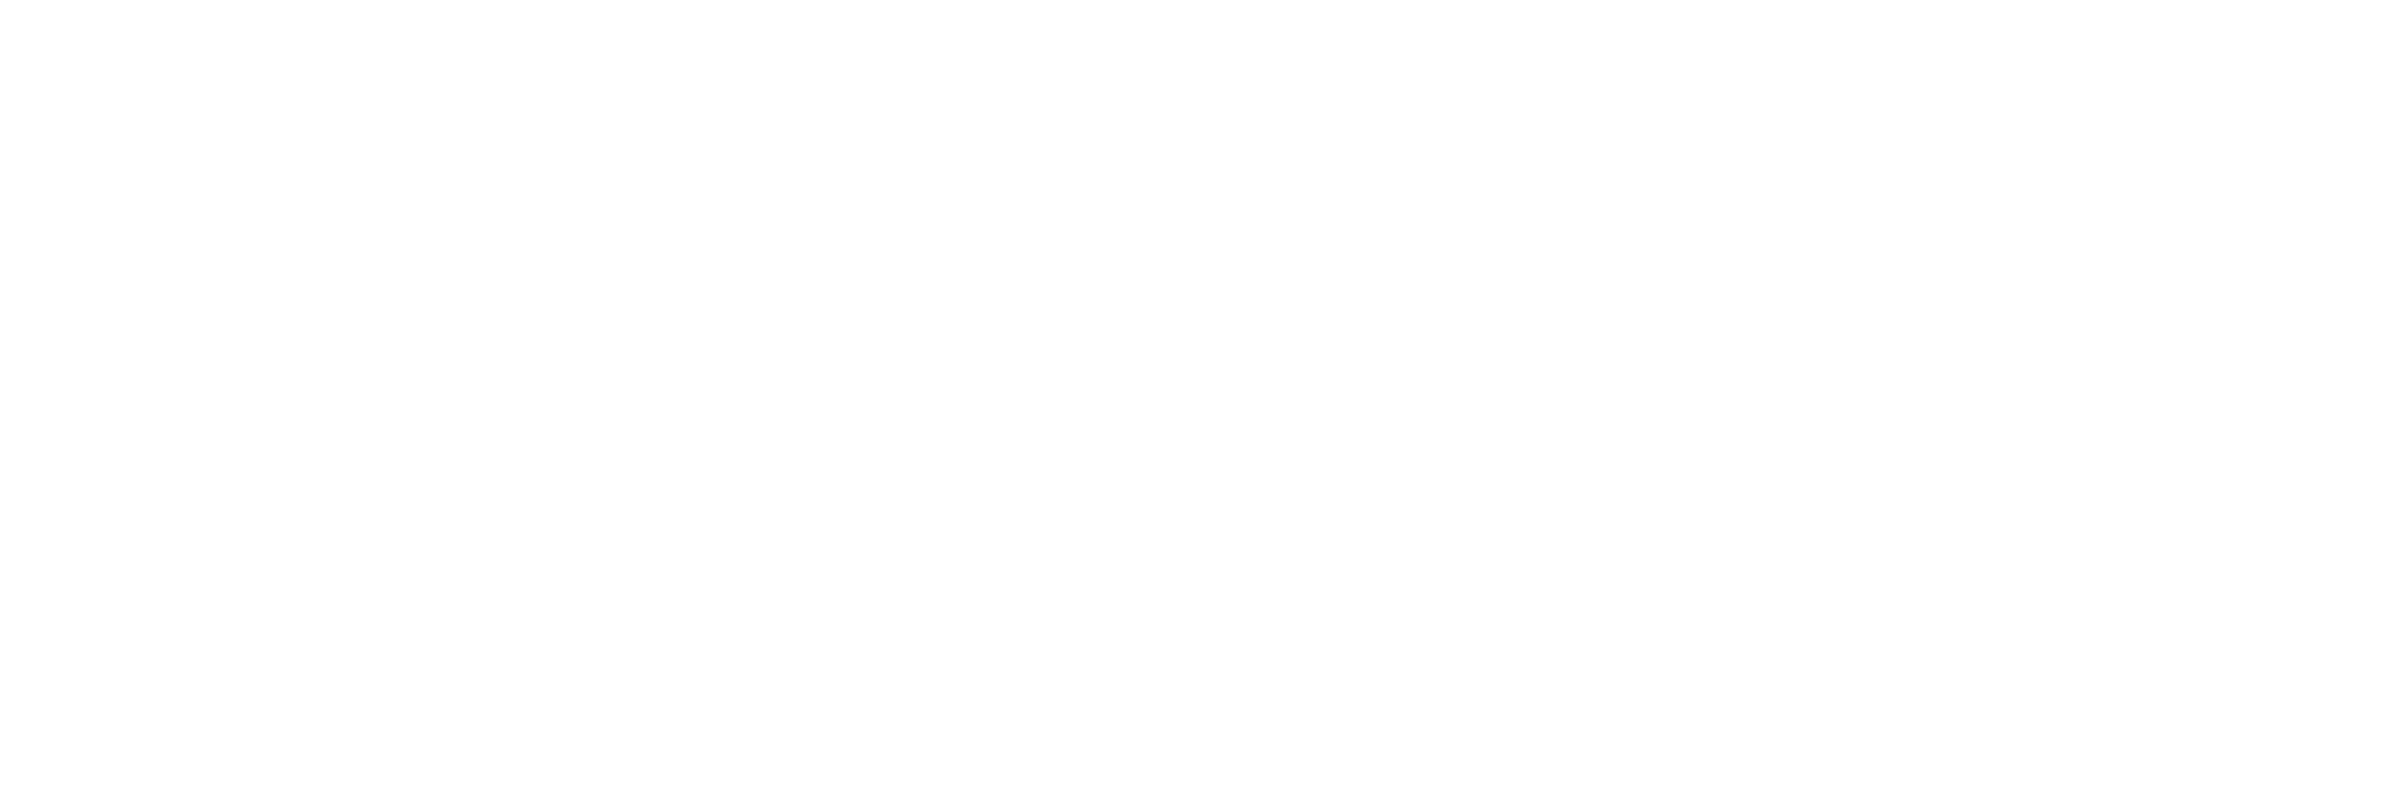 samsung-logo-black-and-white.png